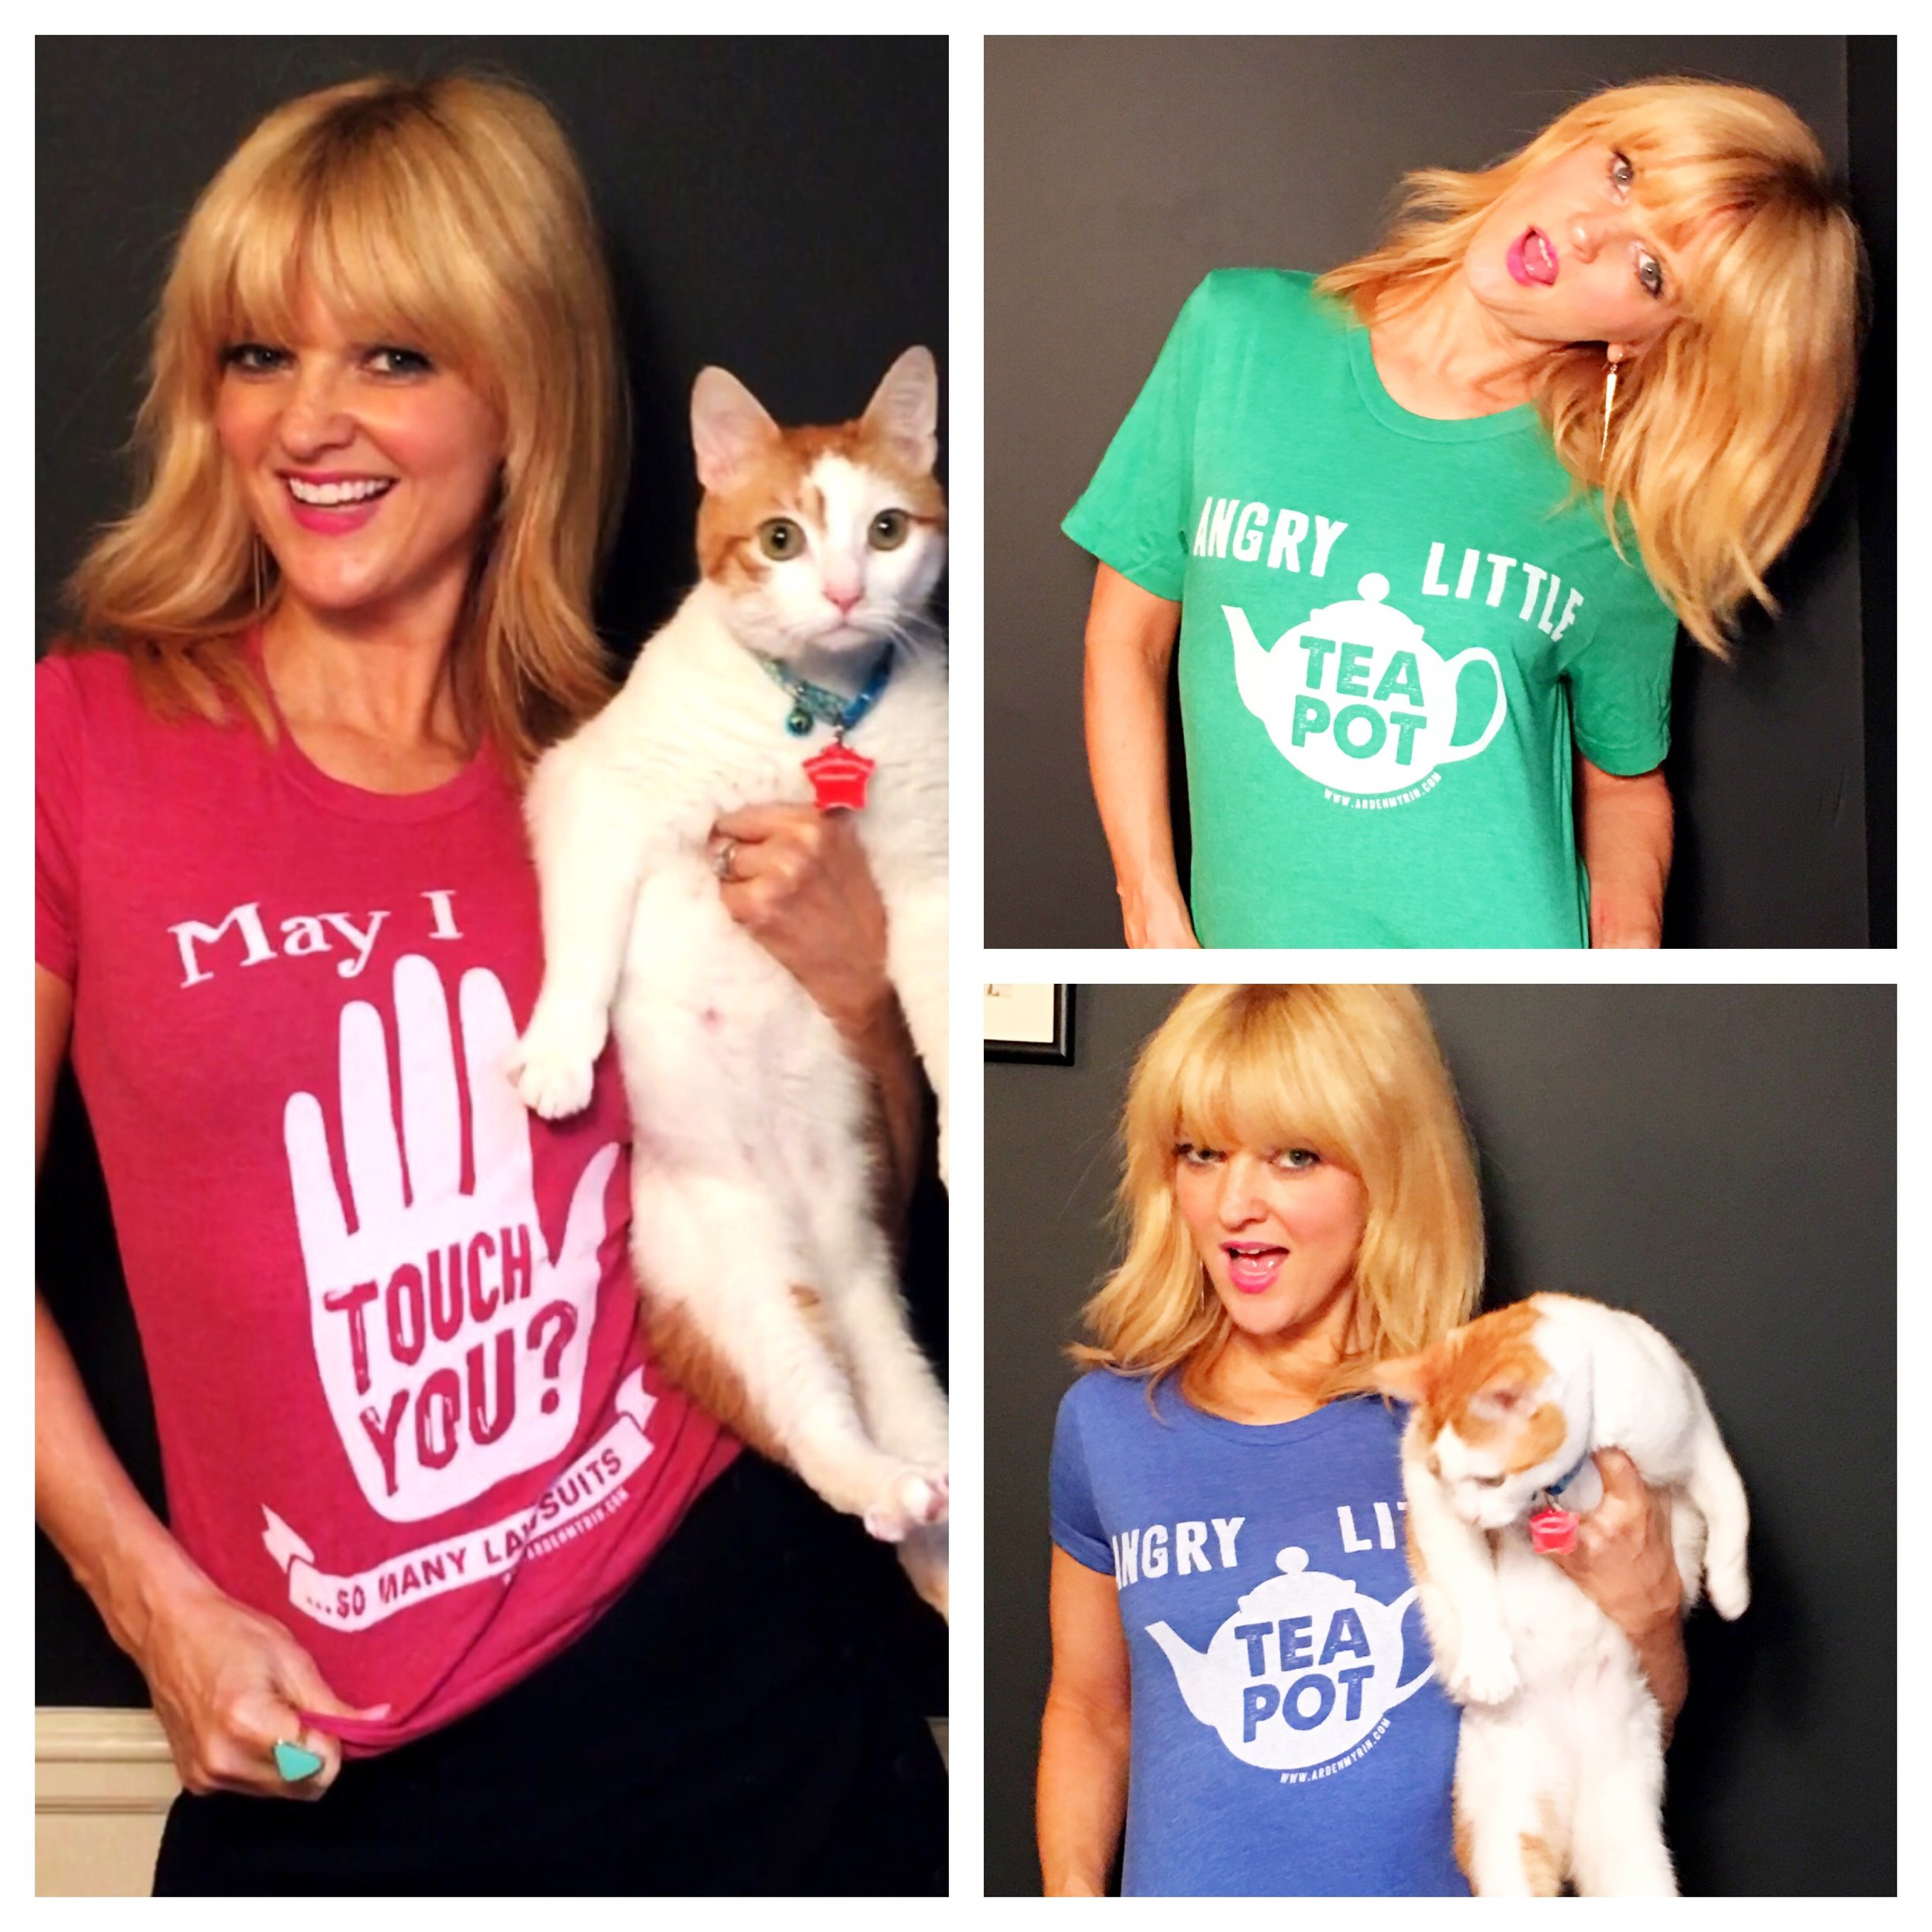 Get your shirts today!  - Shirts for purchase in my brand new shop my bunnies!